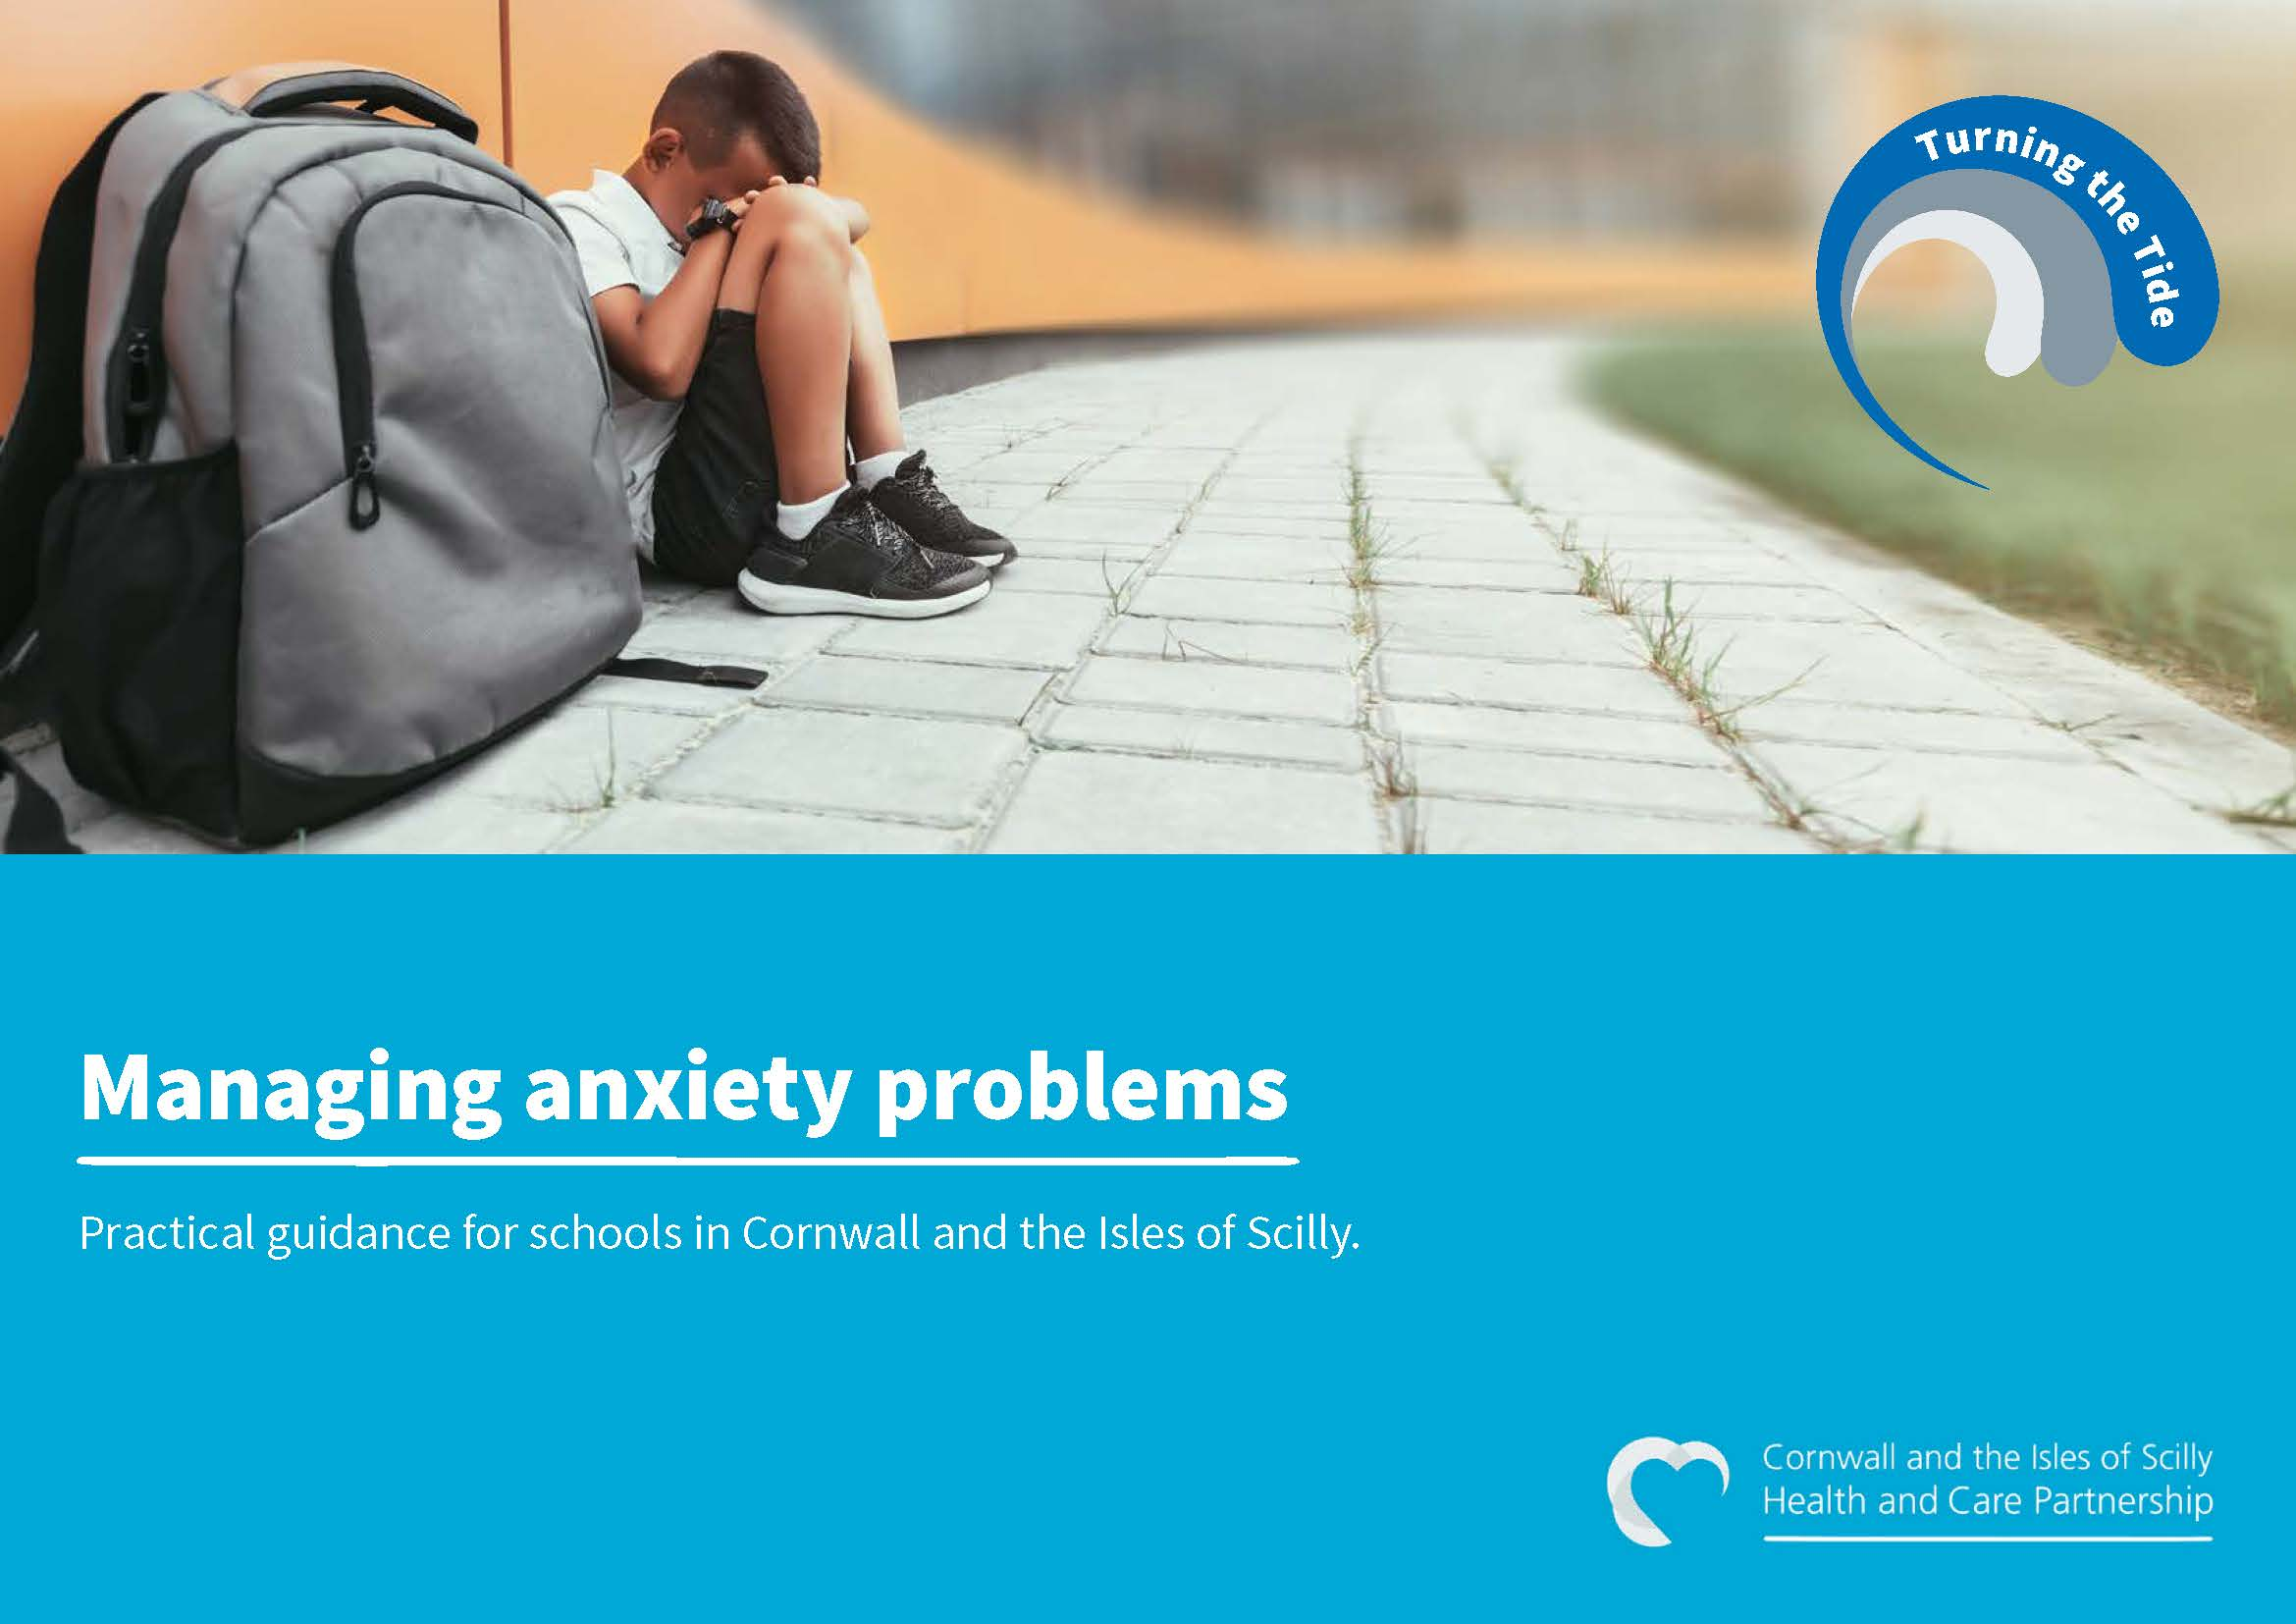 Anxiety guidance cover image